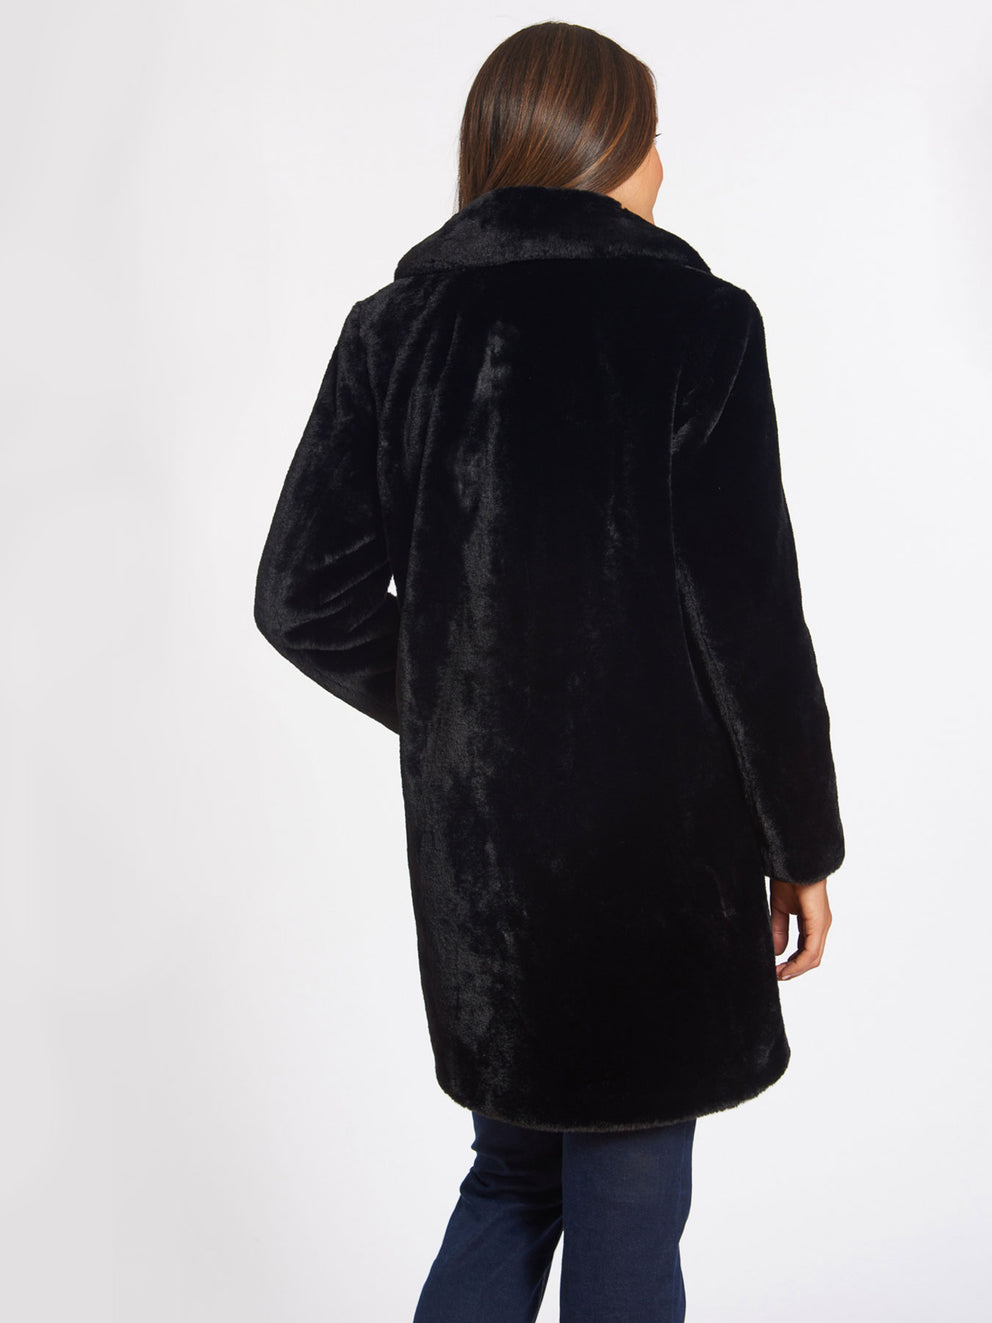 The Jones New York Faux Fur Jacket in color Black - Image Position 4